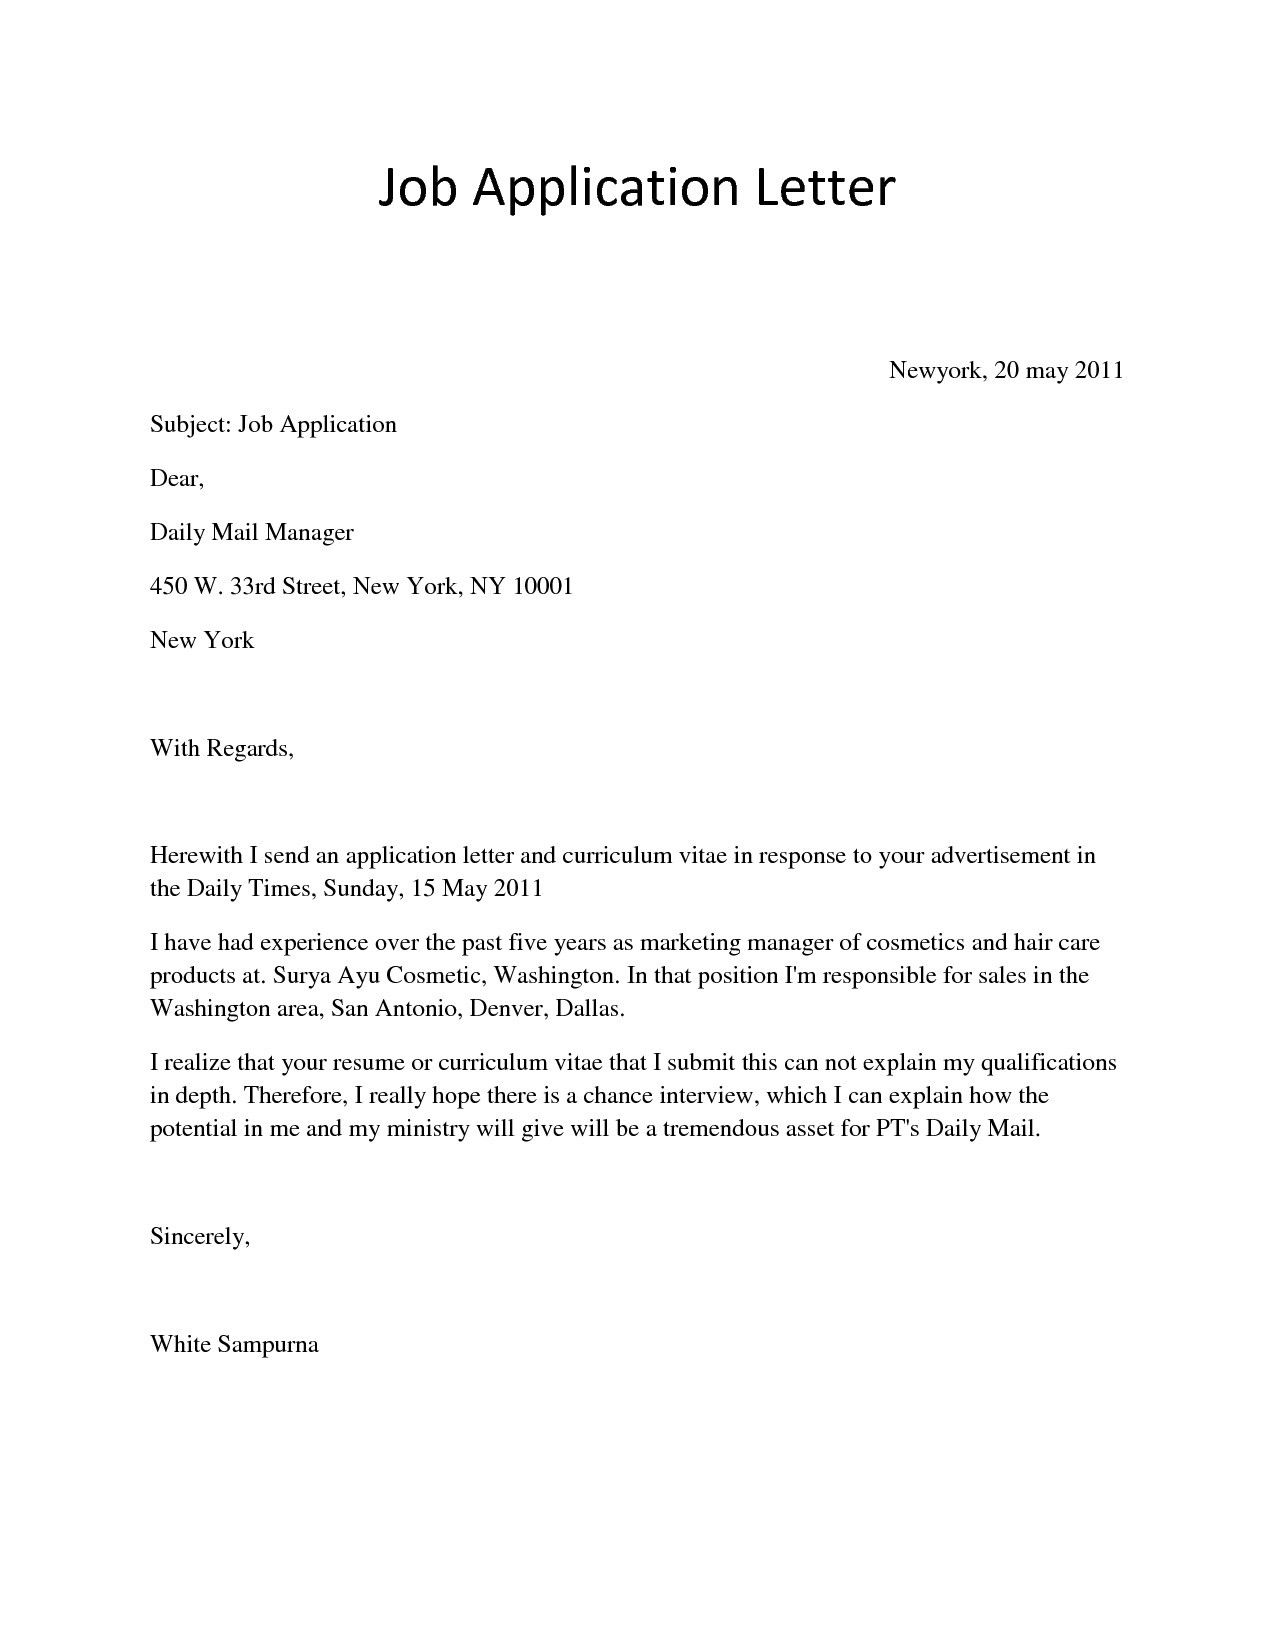 College application report writing jobs